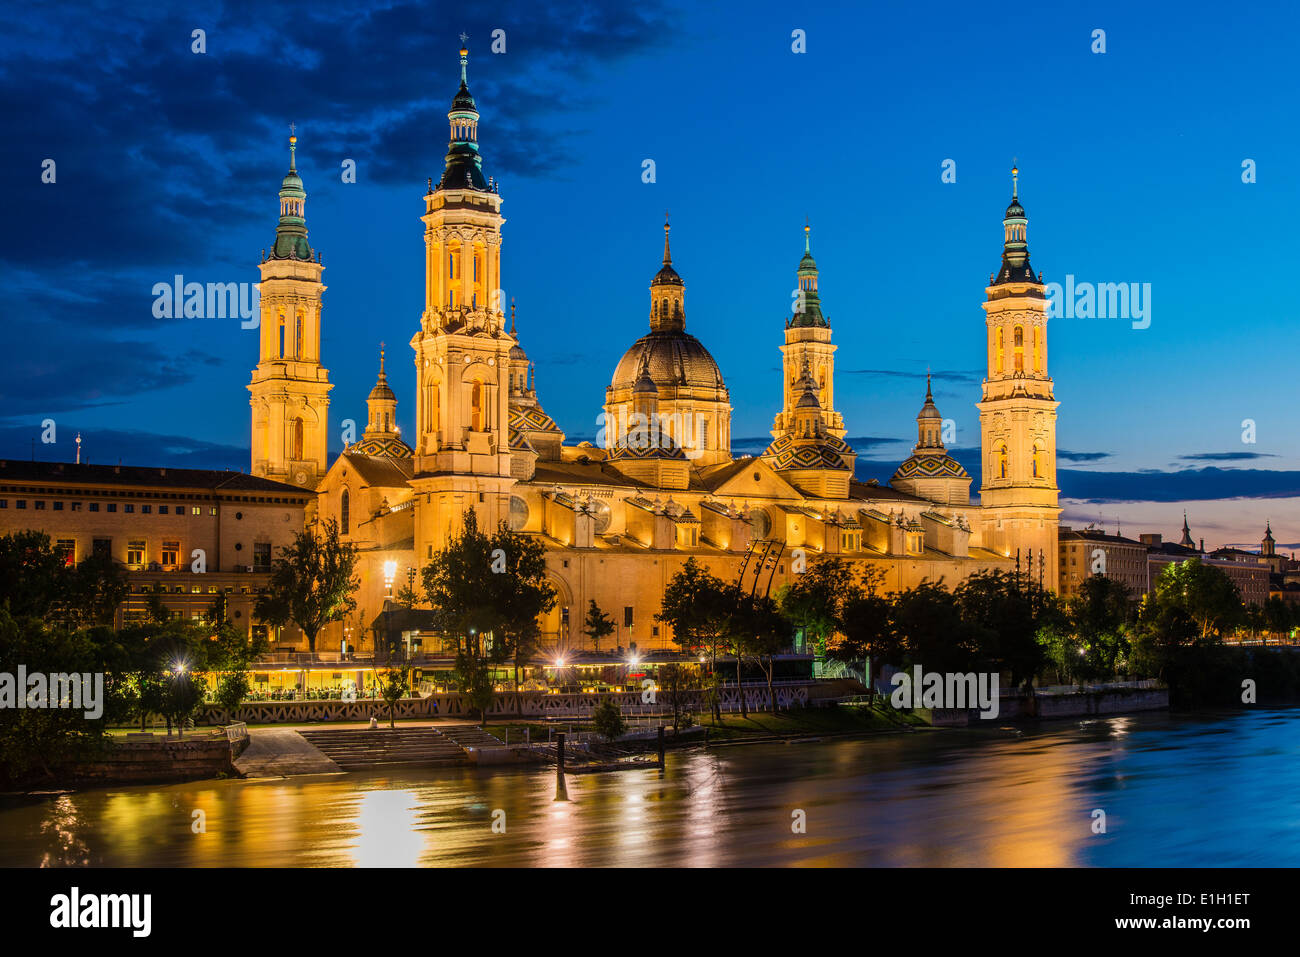 Basilica De Nuestra Senora Del Pilar Church And Ebro River At Dusk Stock Phot...